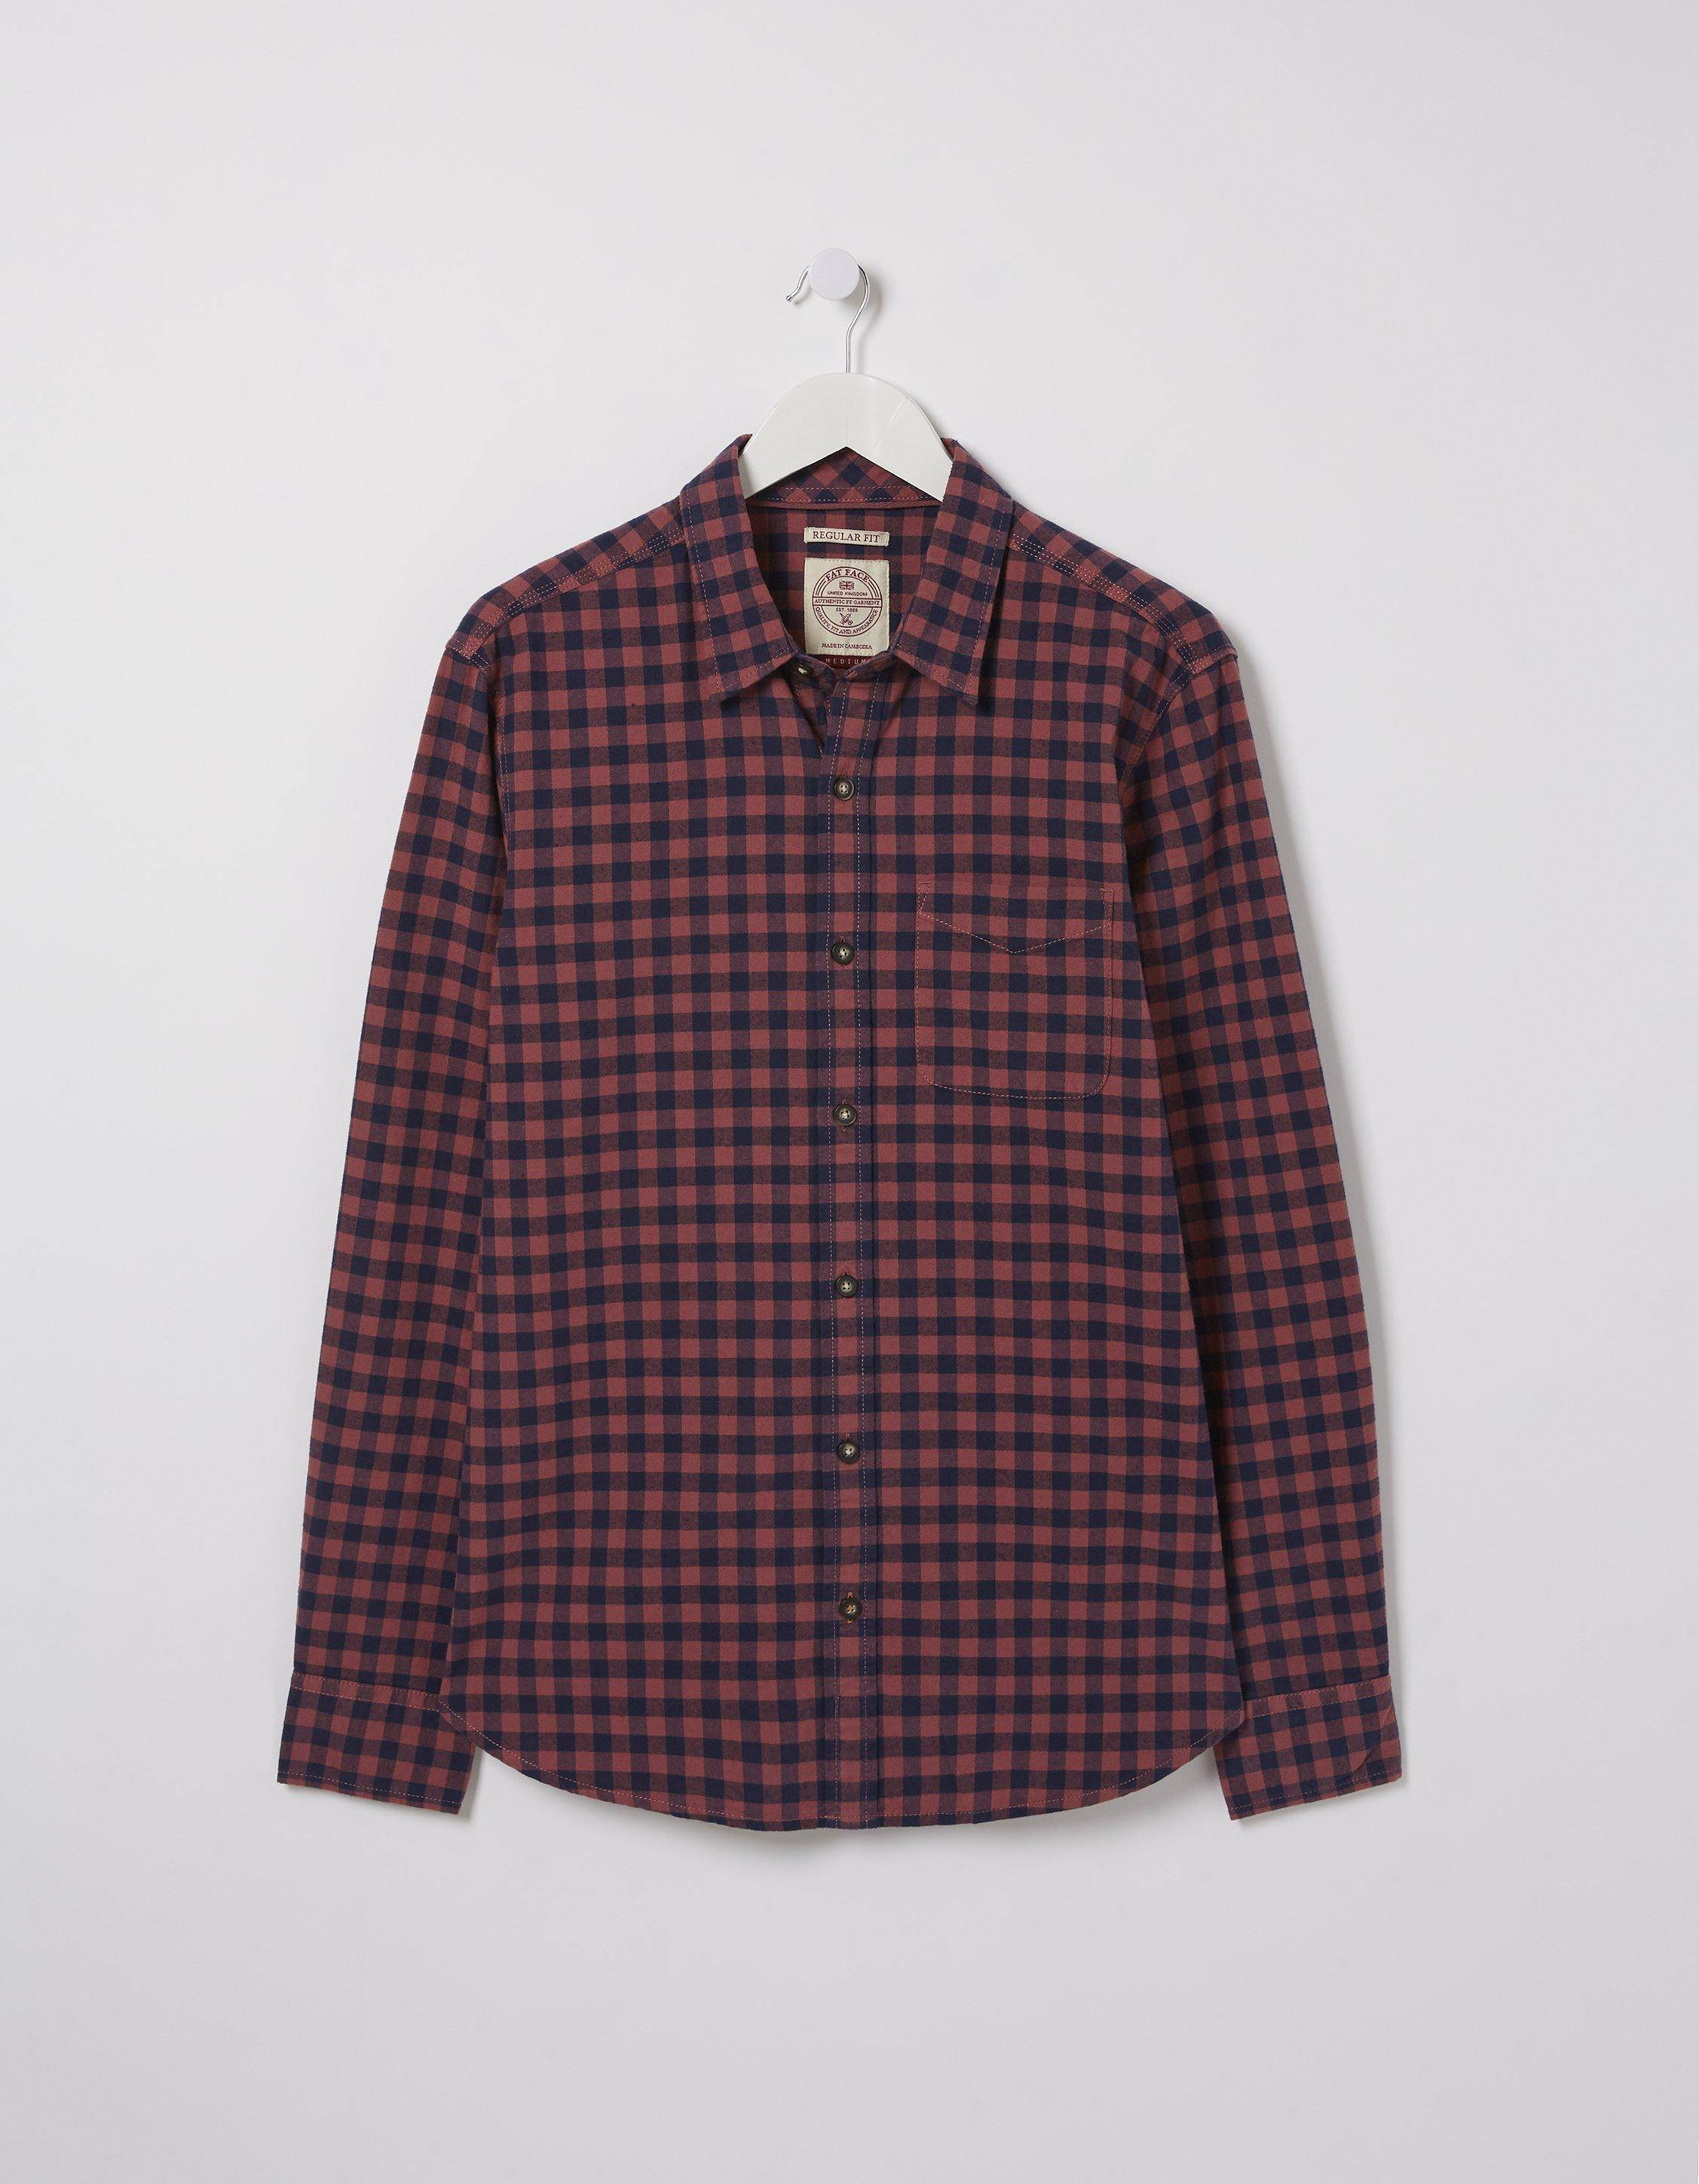 Fat Face Thorney Gingham Shirt  - Size: Small